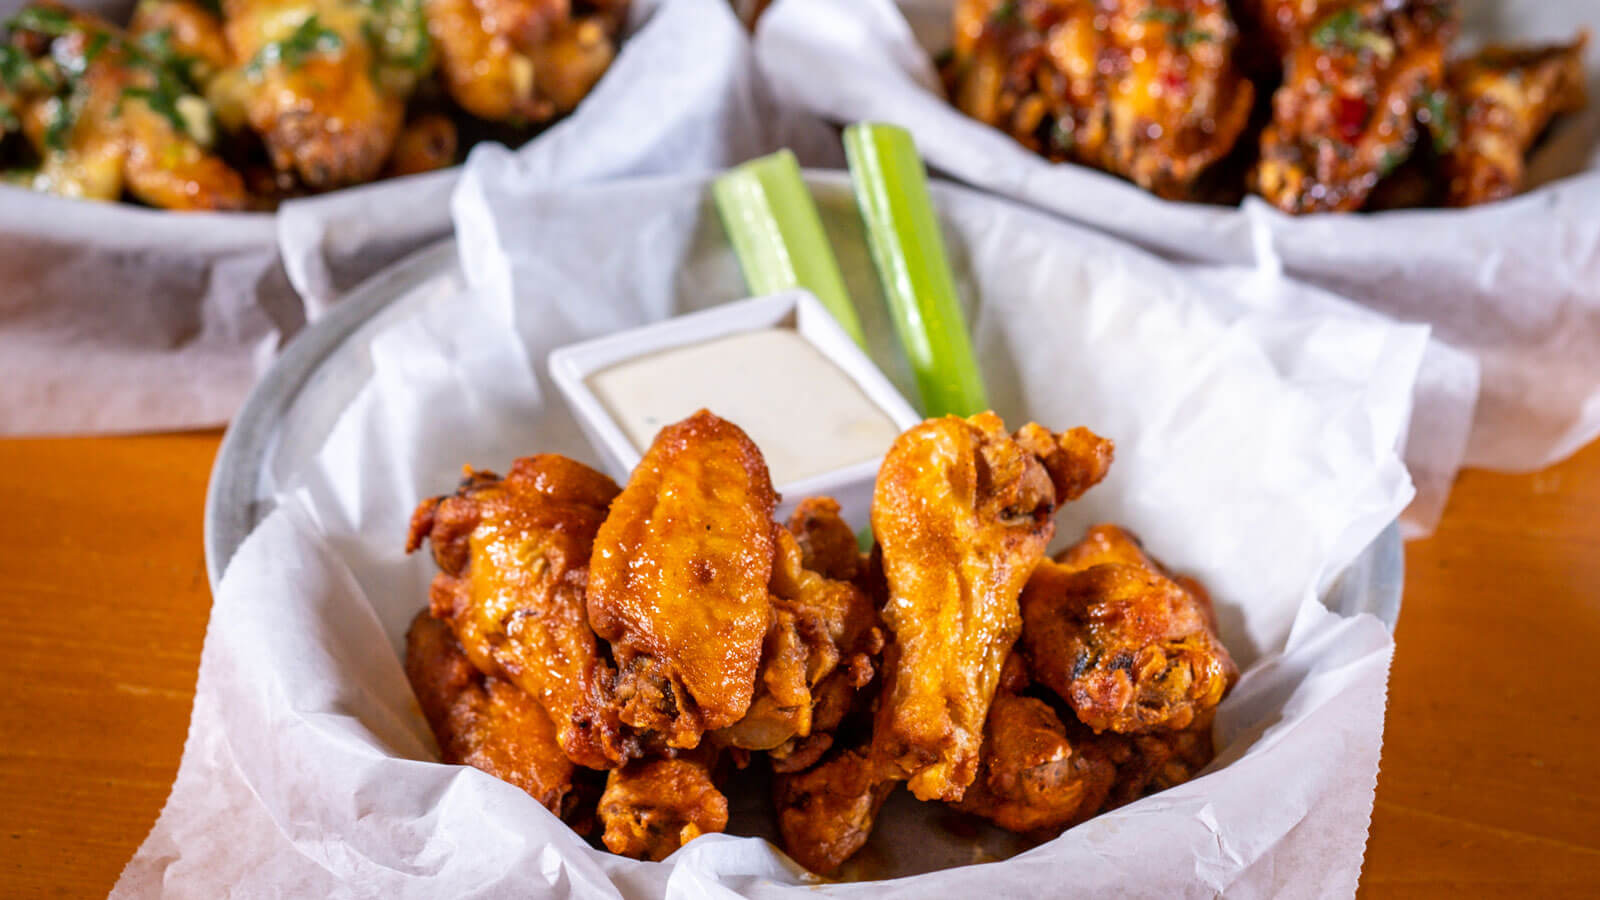 Spicy Wings from MJ23 Sports Bar & Grill - Desktop Gallery